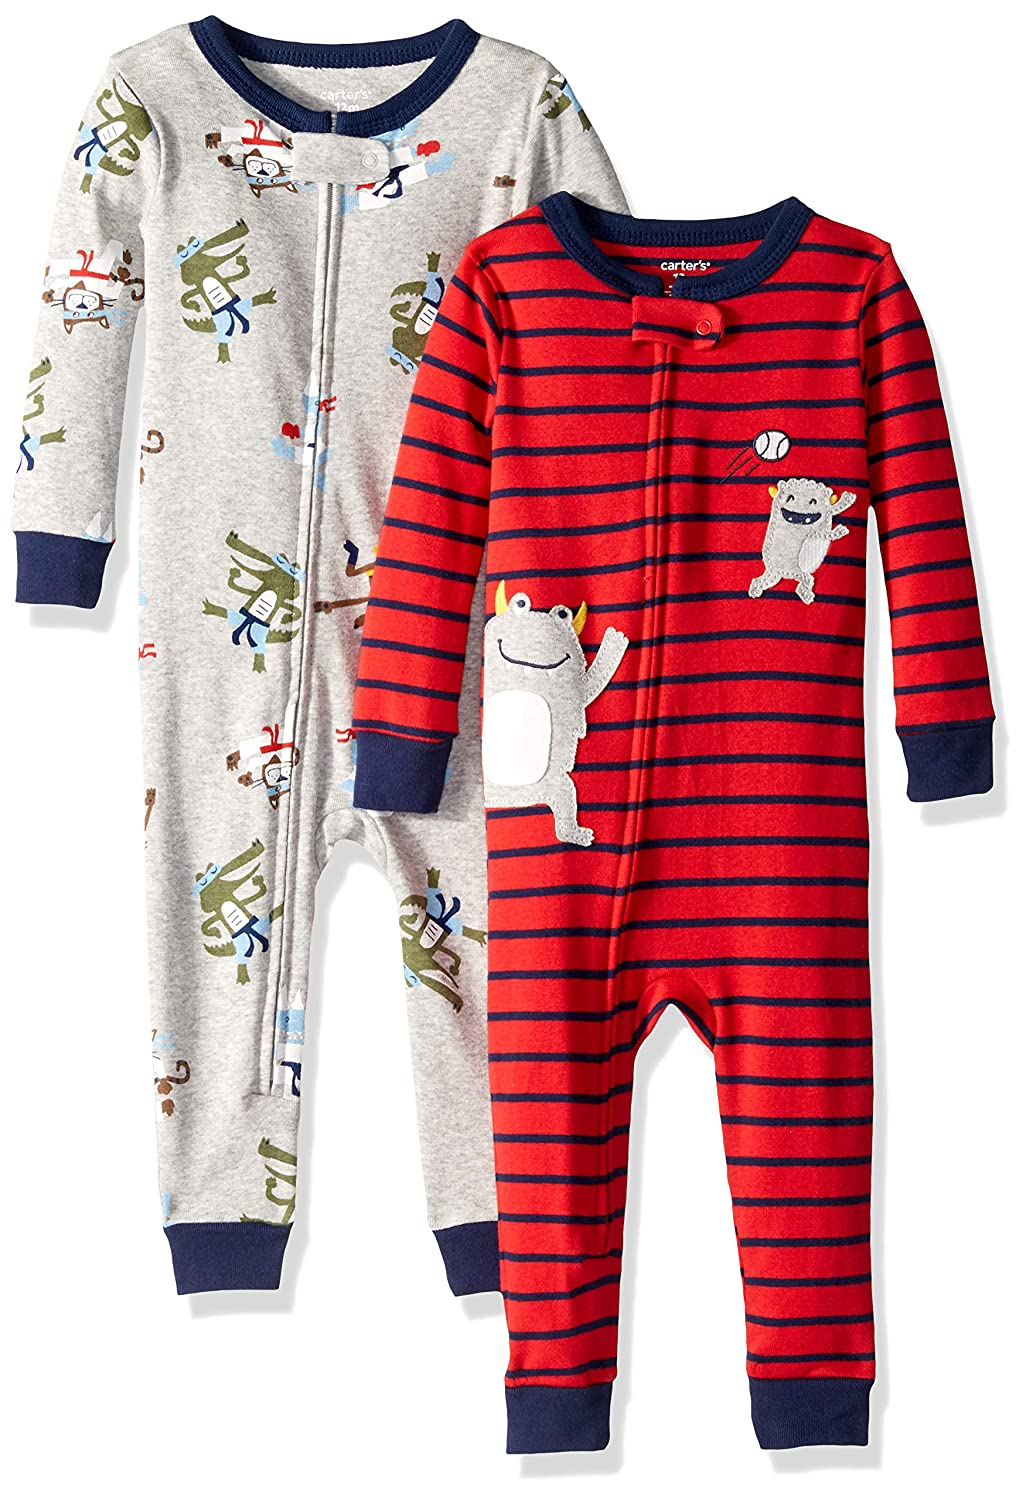 f3842c64c Amazon.com  Carter s Baby Boys  2-Pack Cotton Footless Pajamas  Clothing